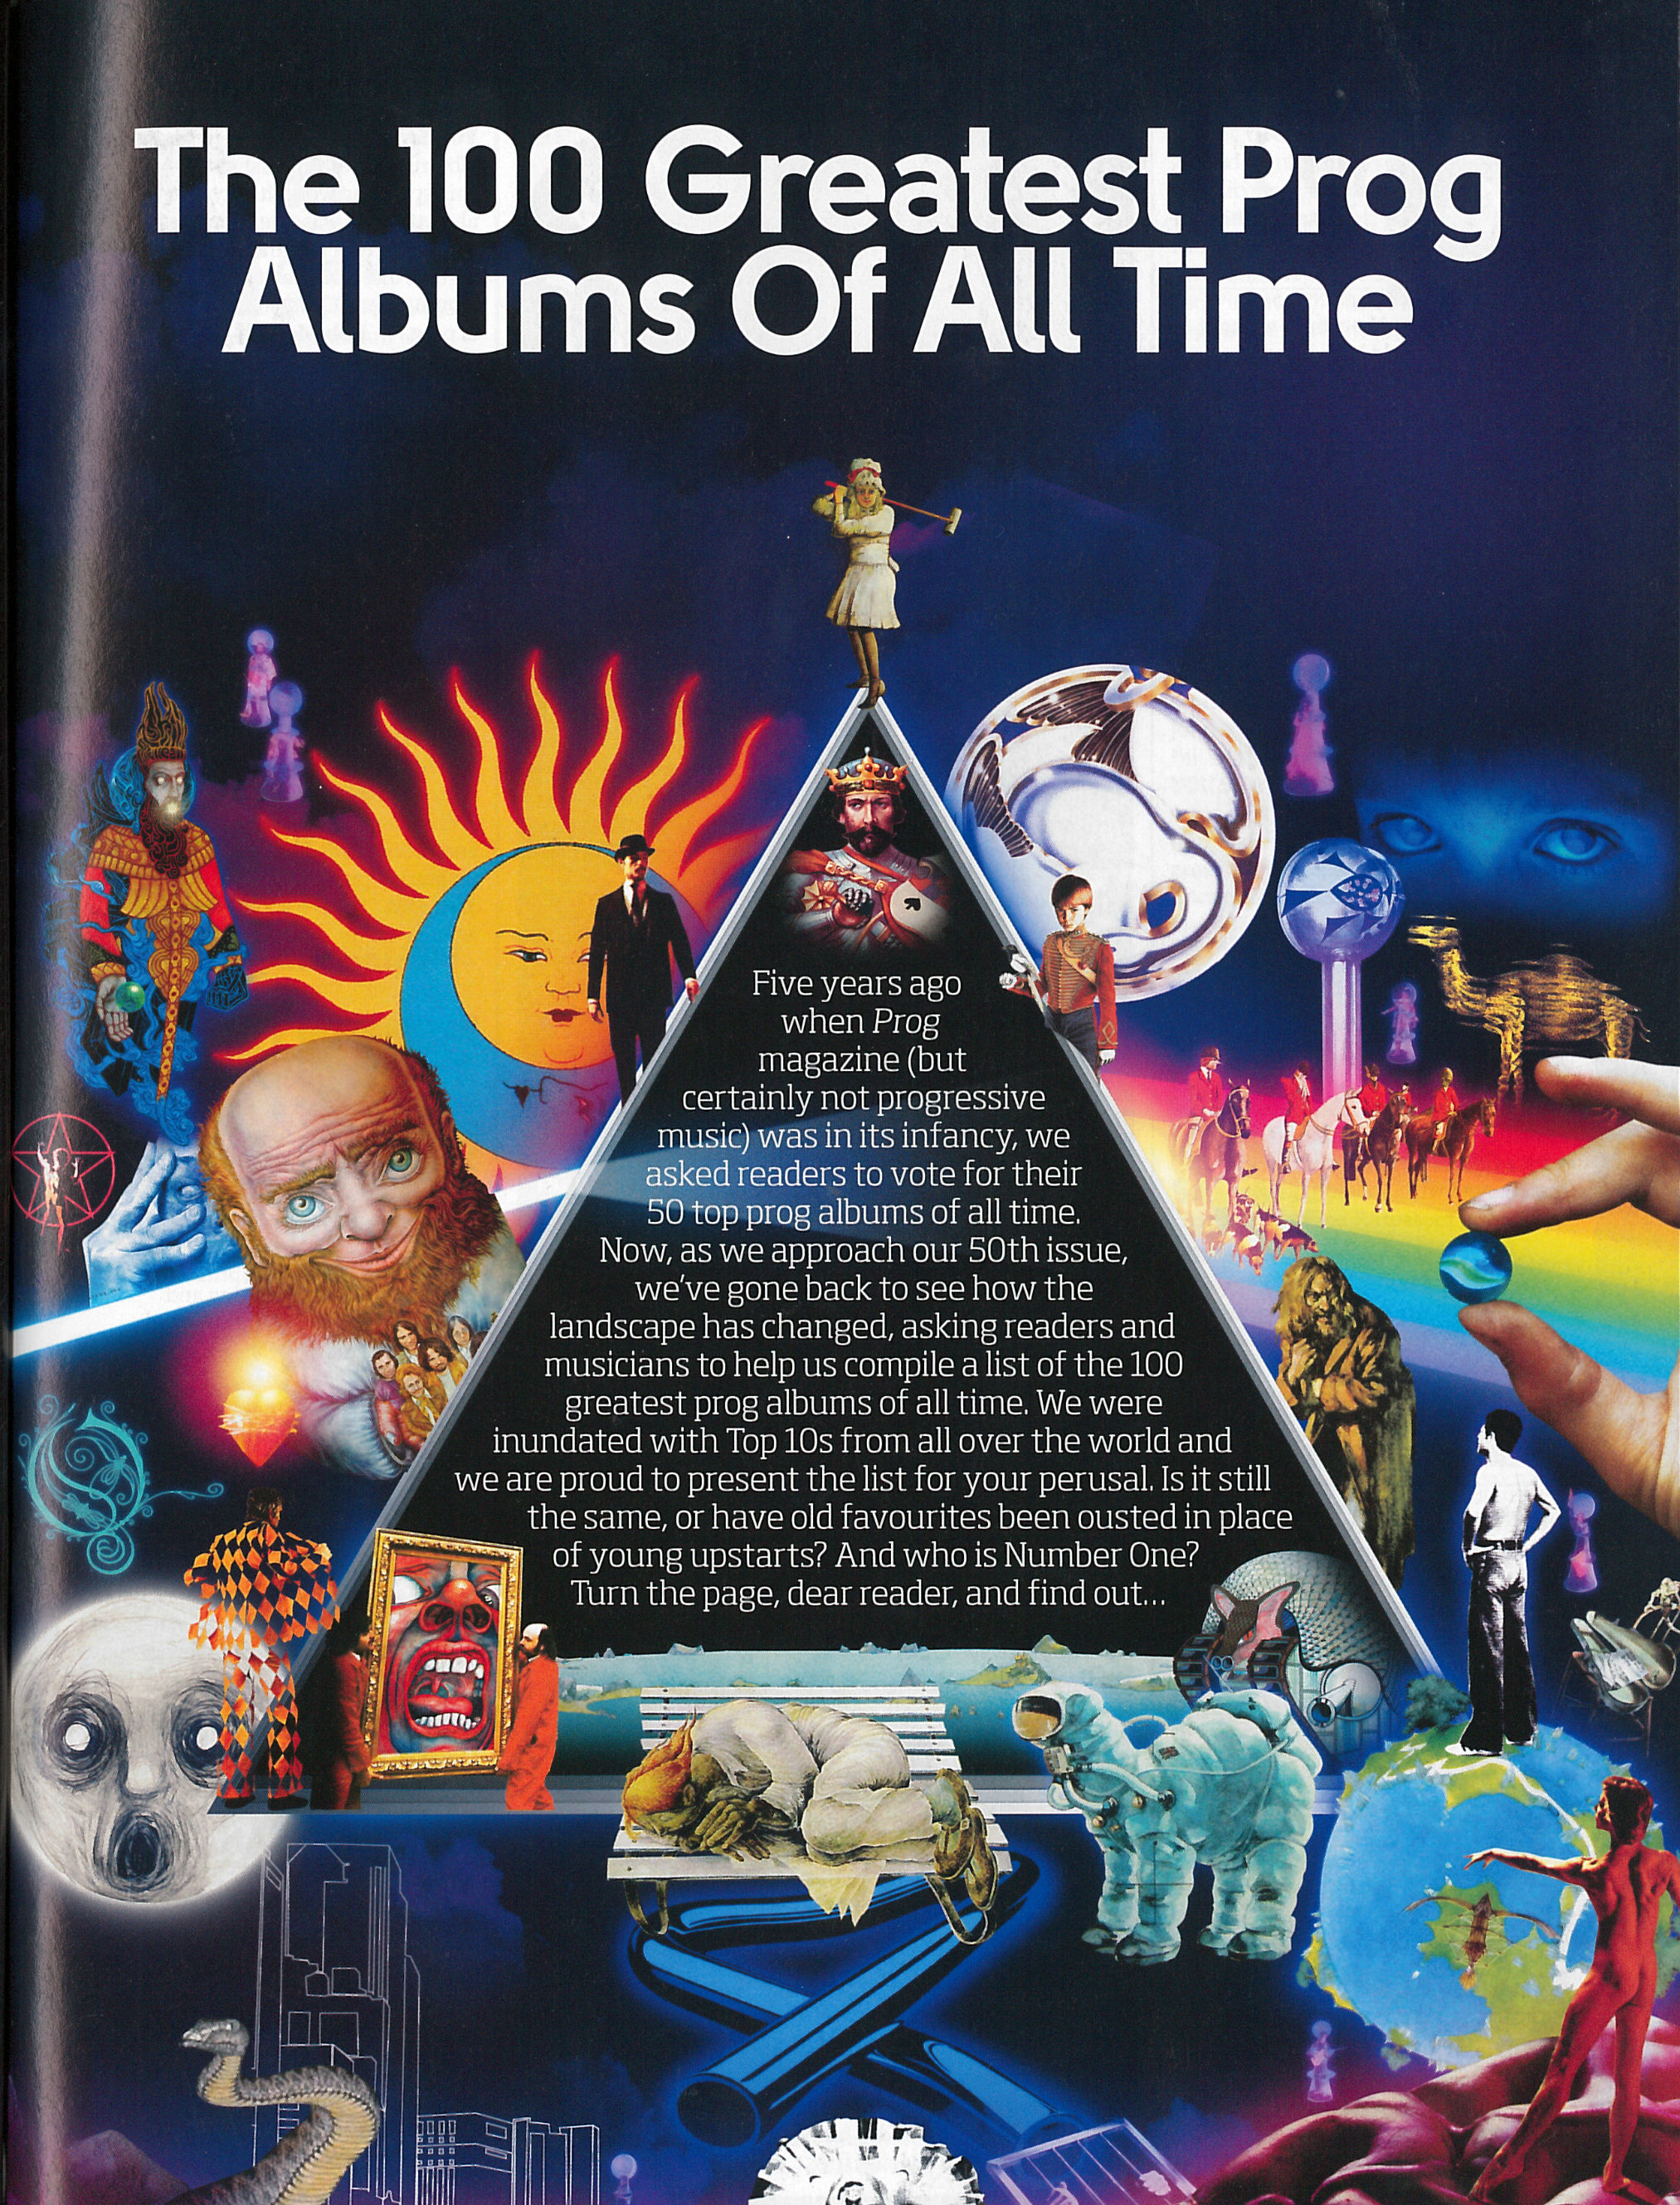 the 100 greatest world music albums Music is not a competition and there are no hard and fast drawn from similar polls held all over the world the 100 greatest rock albums classic rock special.